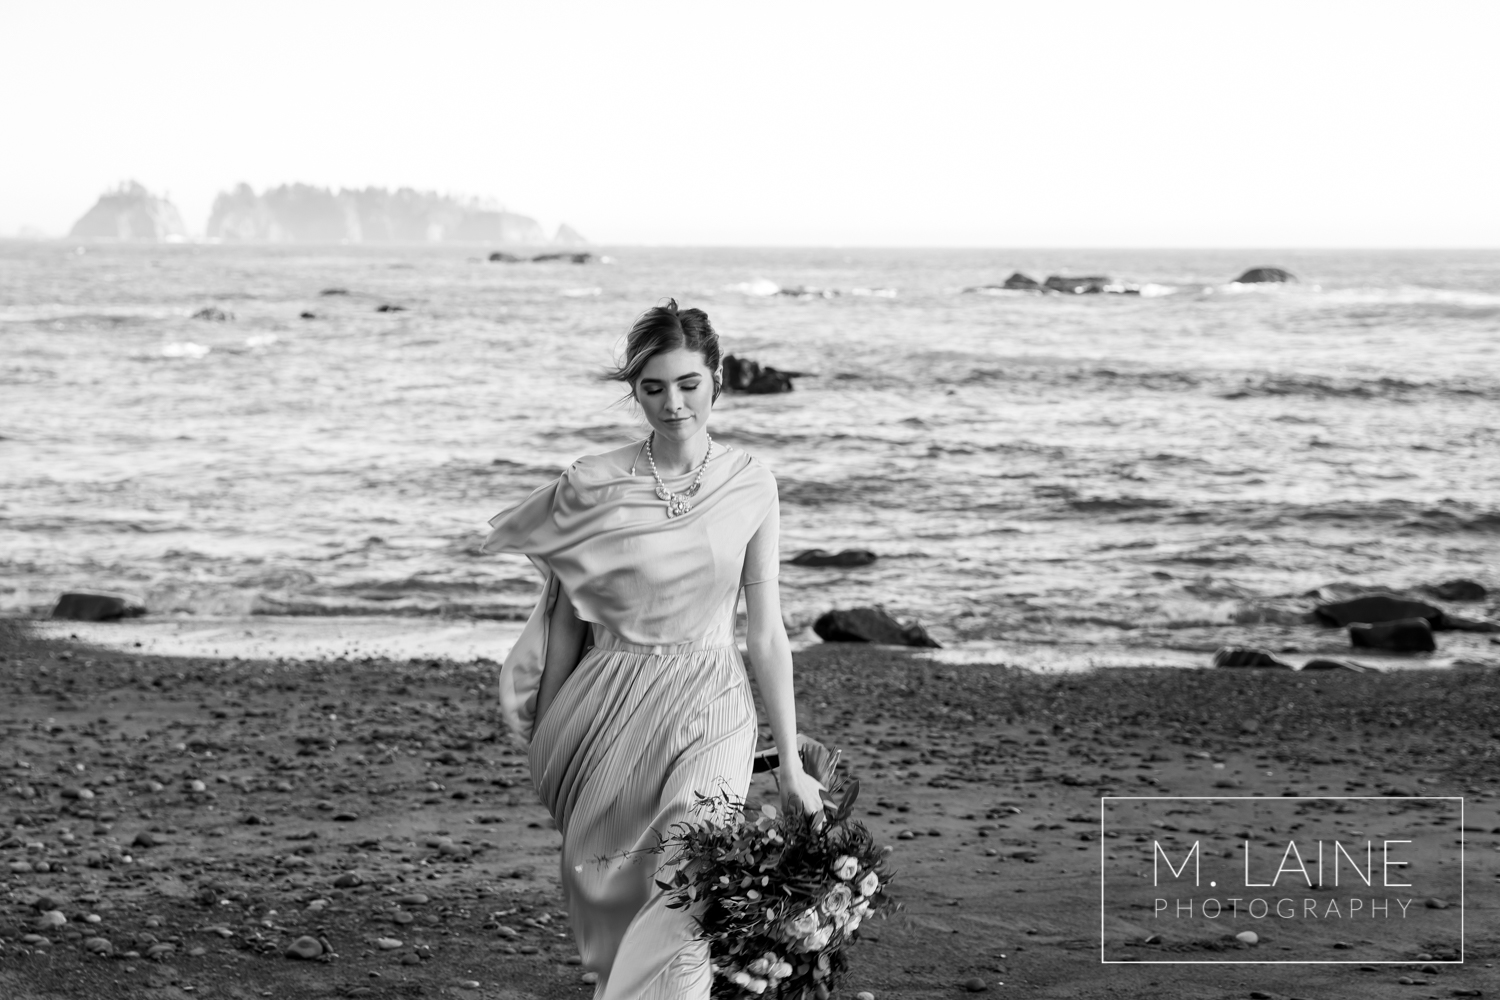 Rialto-Beach-Olympic-National-Park-Elopement-8847.jpg